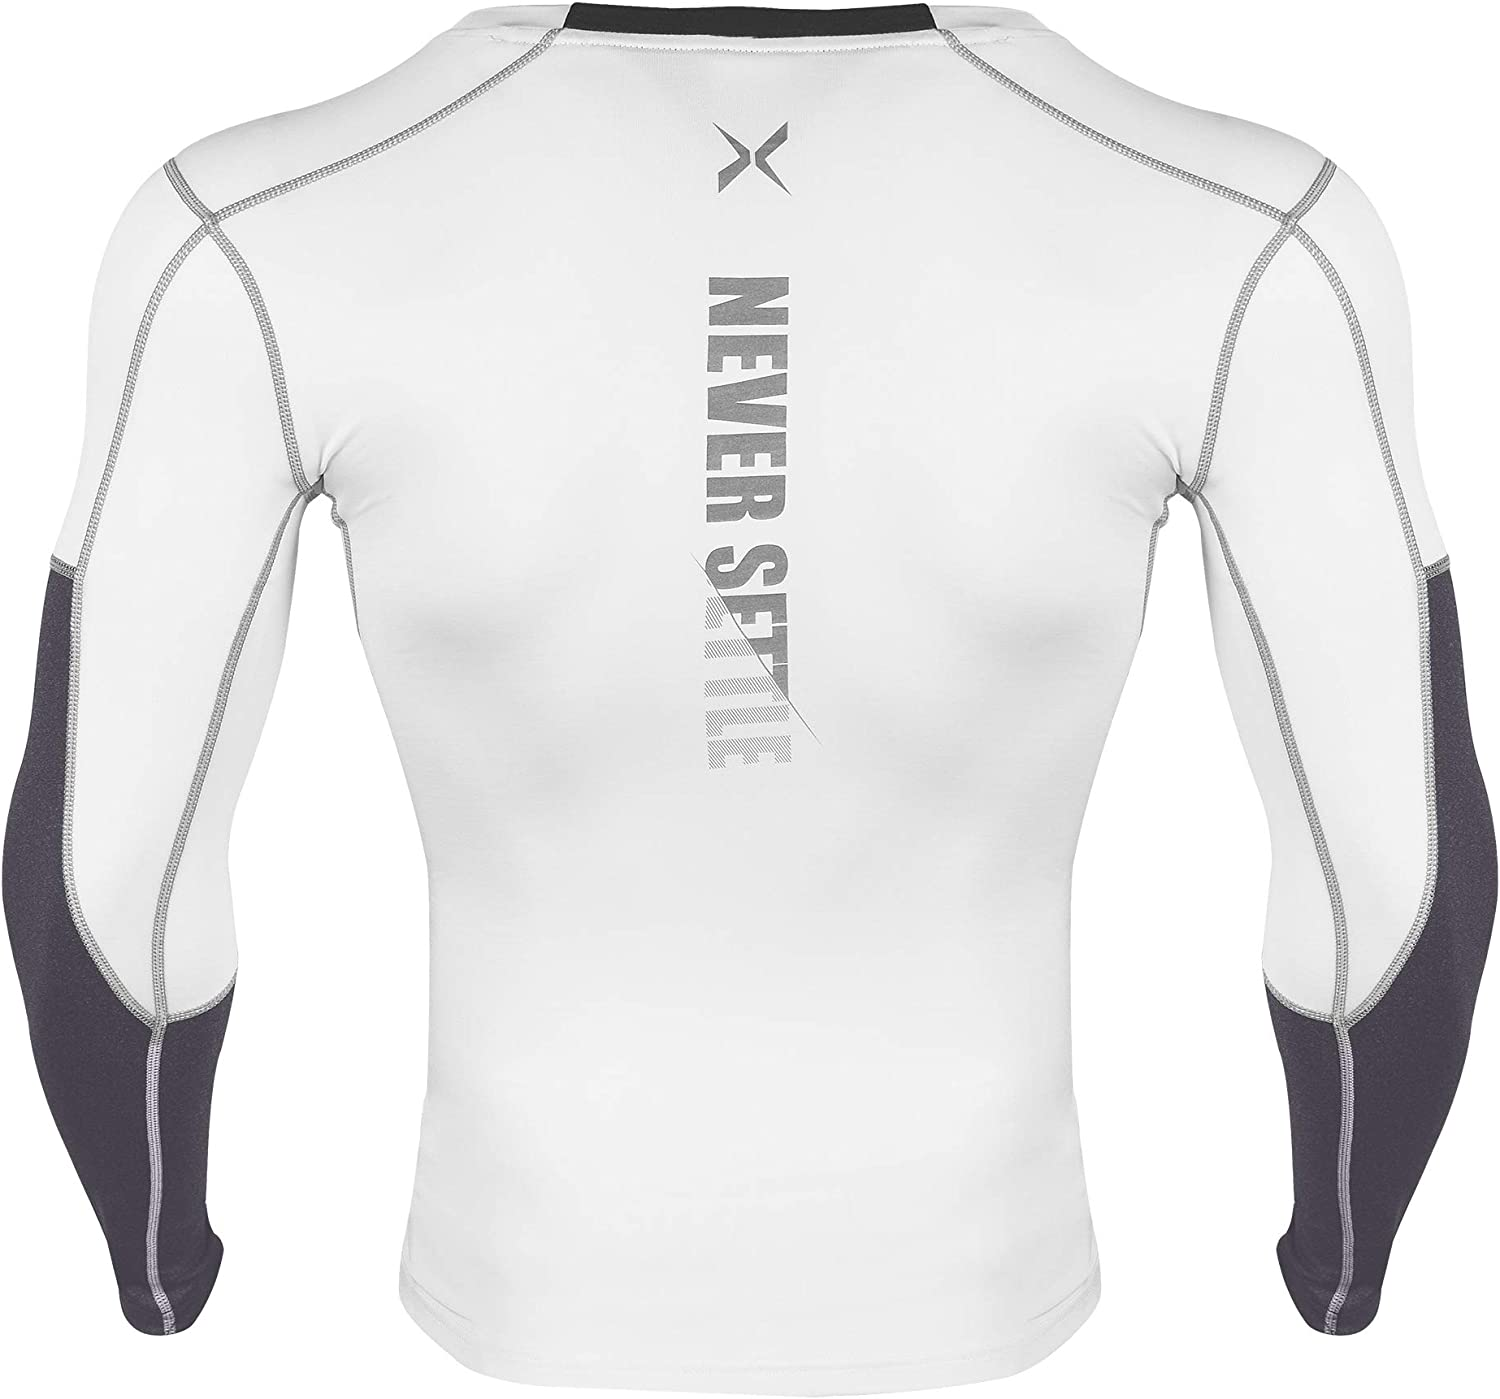 Xtextile Mens Long Sleeve Compression Top Cool Dry Baselayer Training Rash Guard